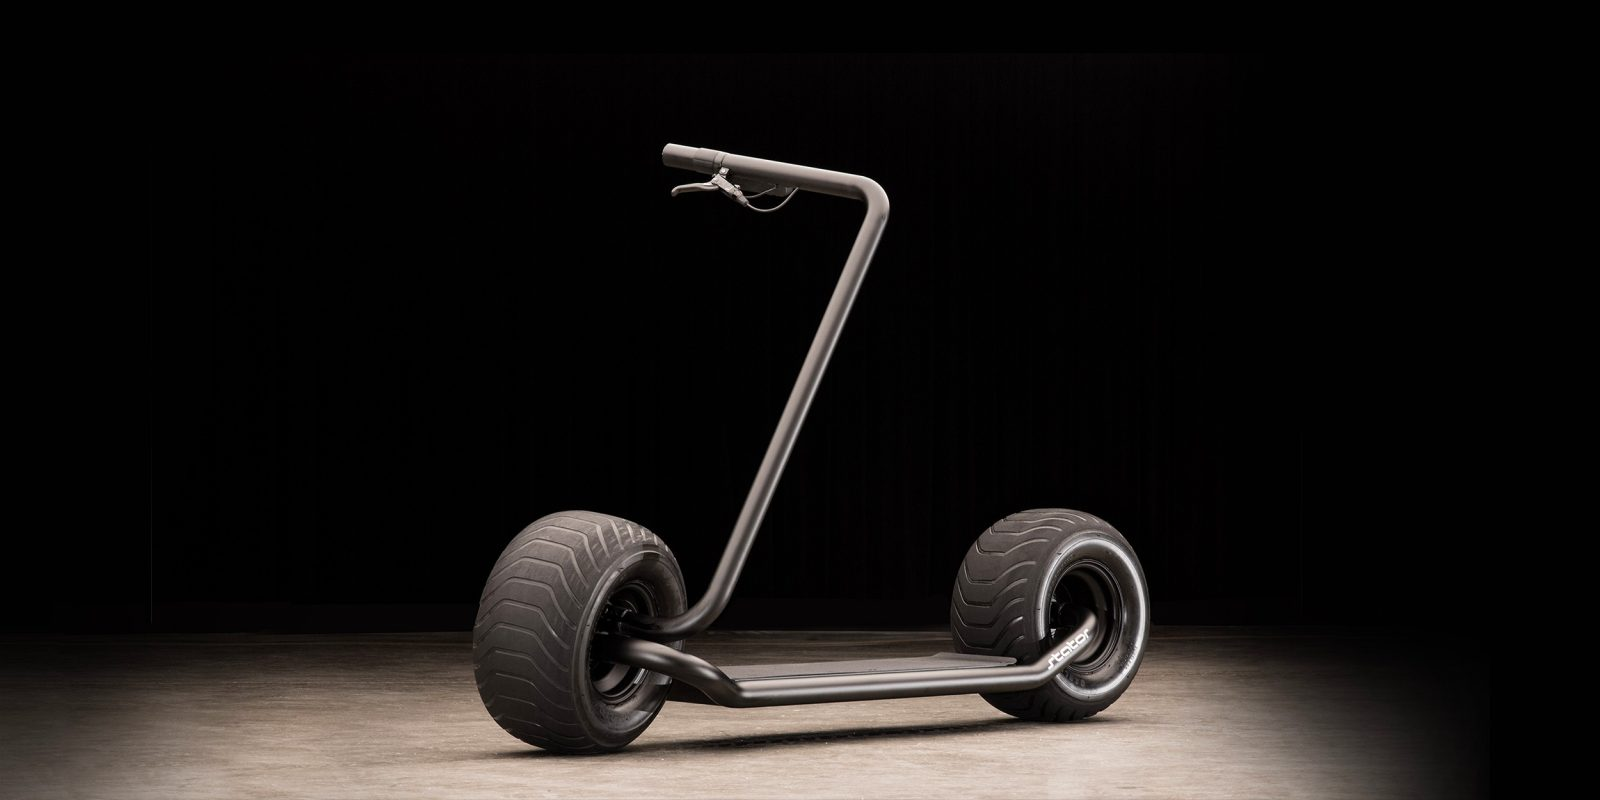 16c44fb53577 The crazy big-wheeled US-made electric scooter that you can't buy… yet